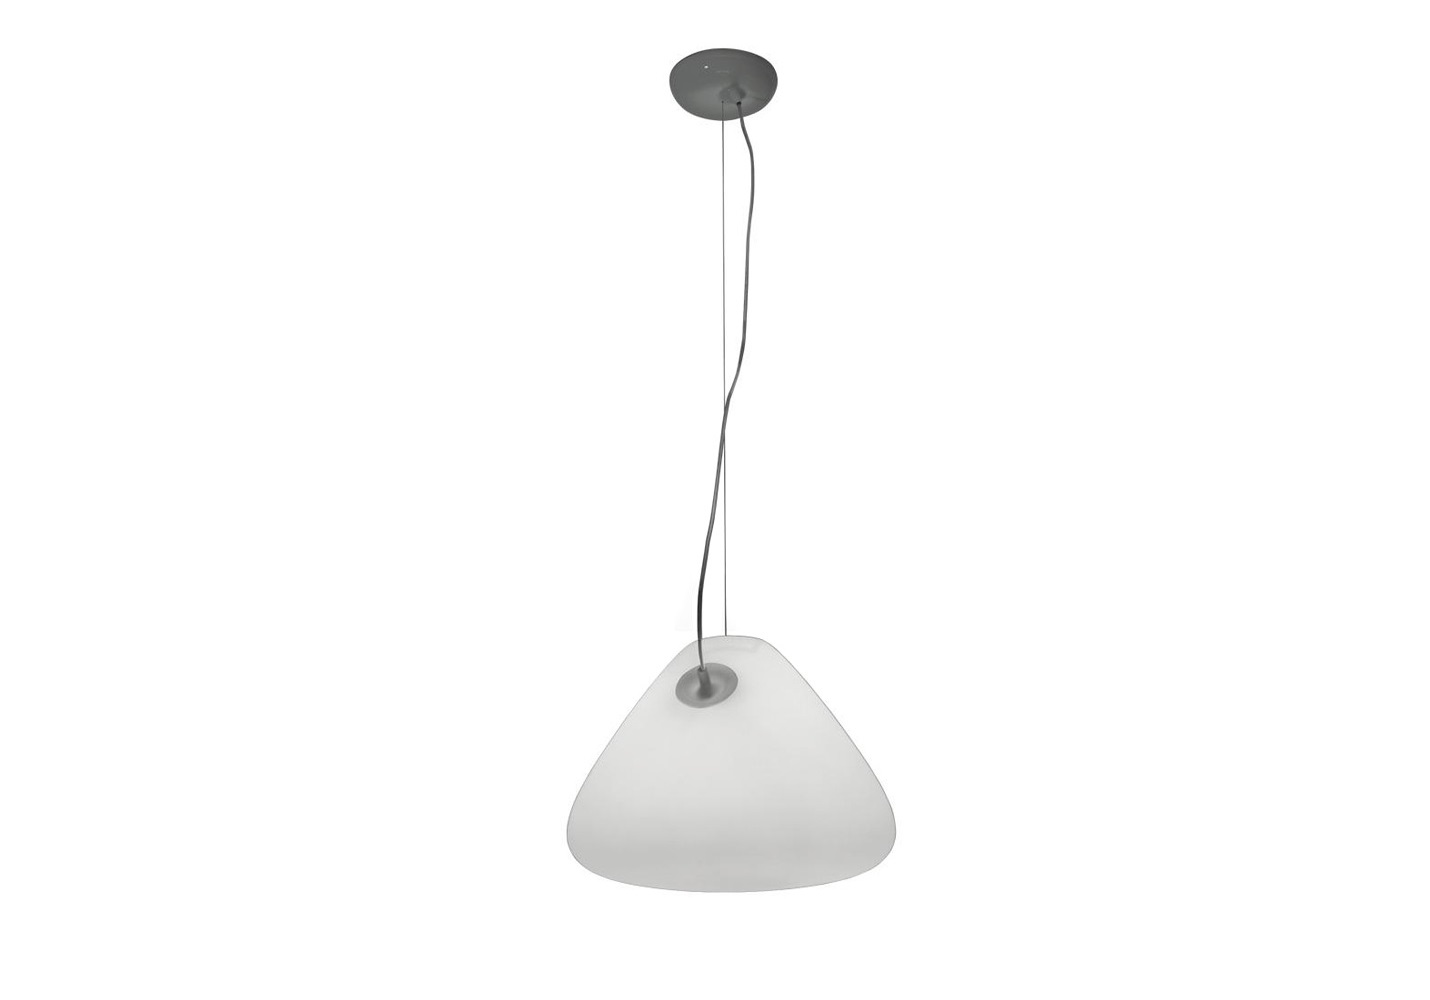 Люстра Artemide 15448725 от thefurnish